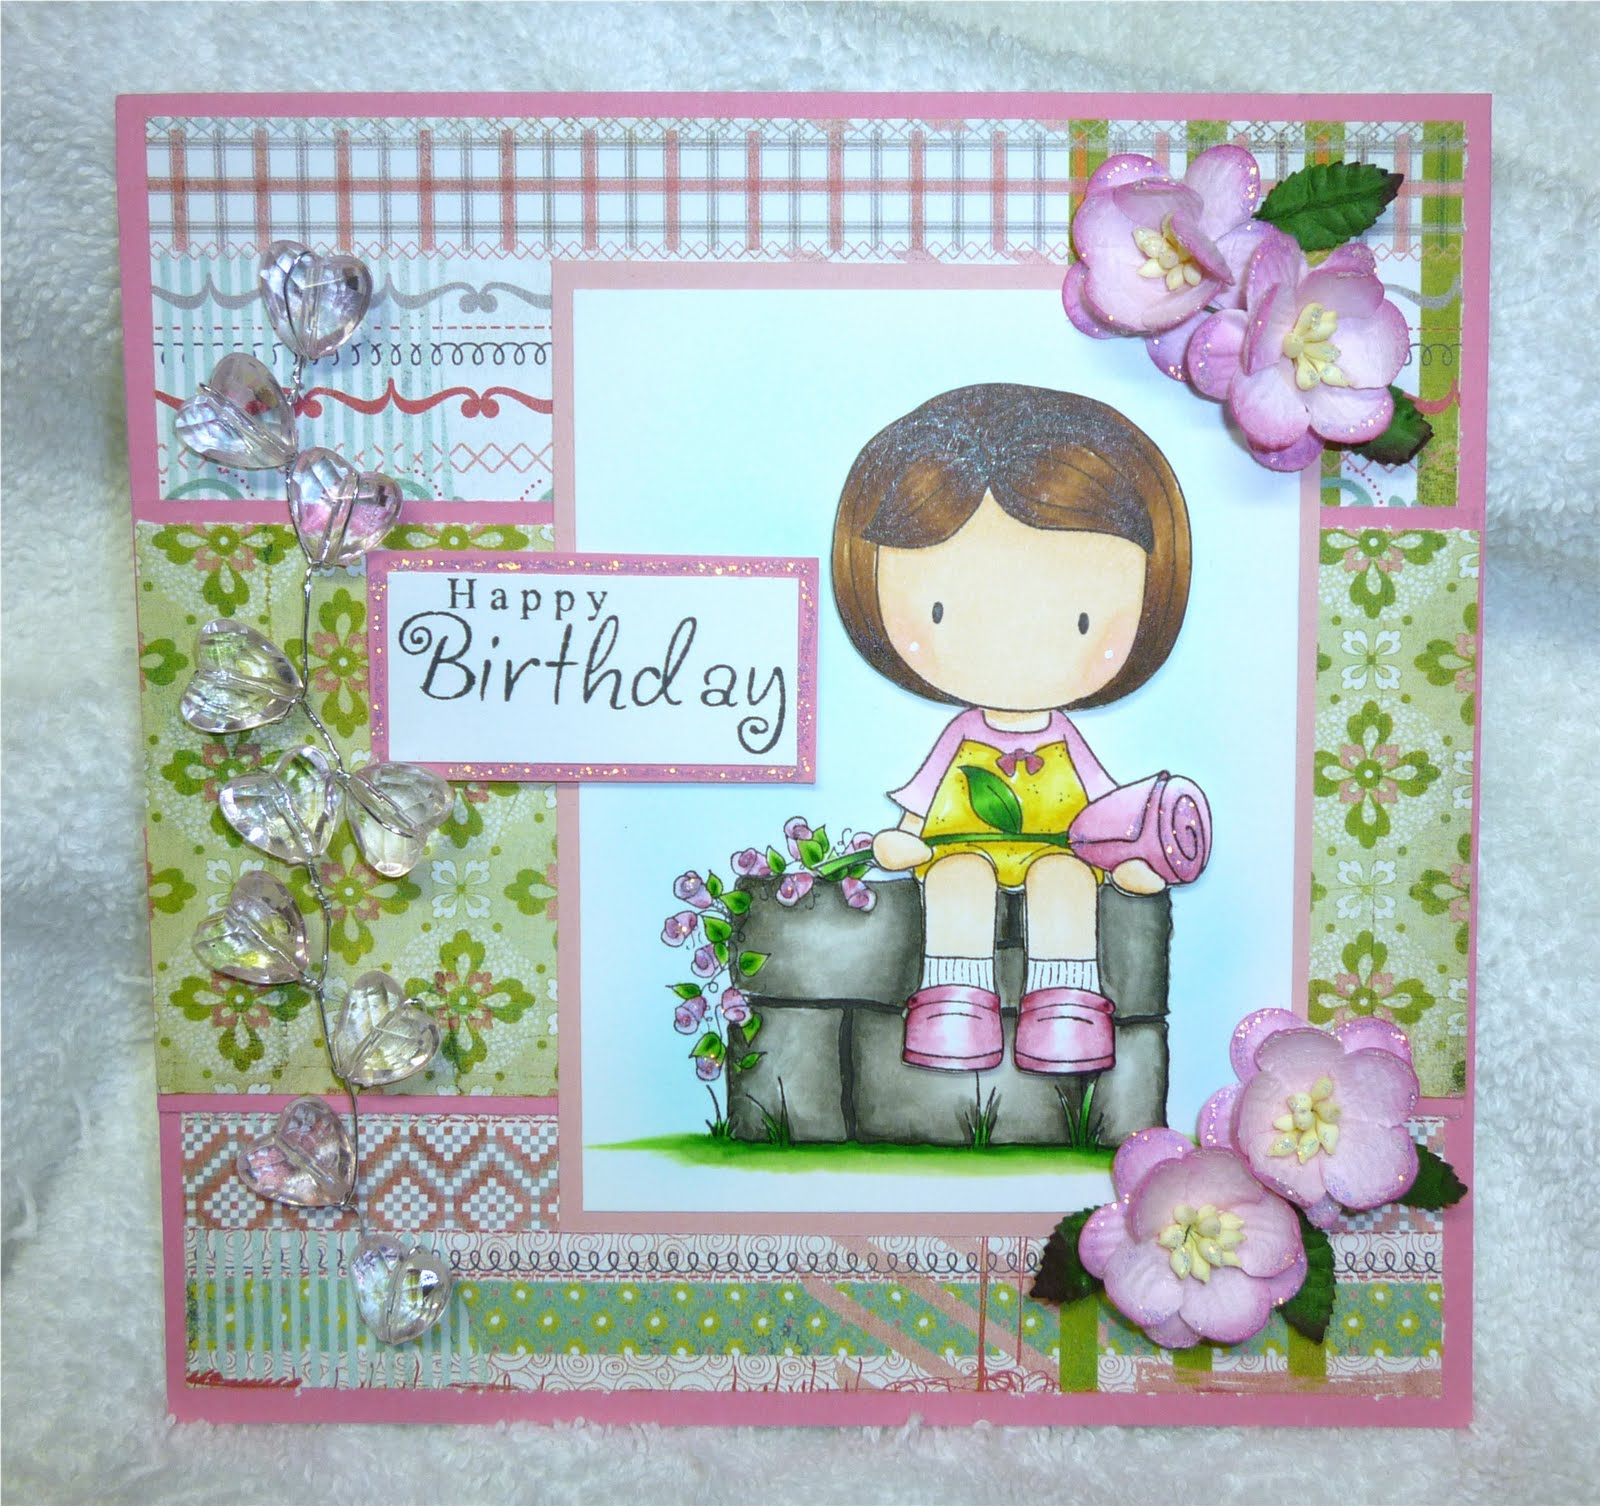 Big Ideas From A Little Girl: Beautiful Birthday Cards